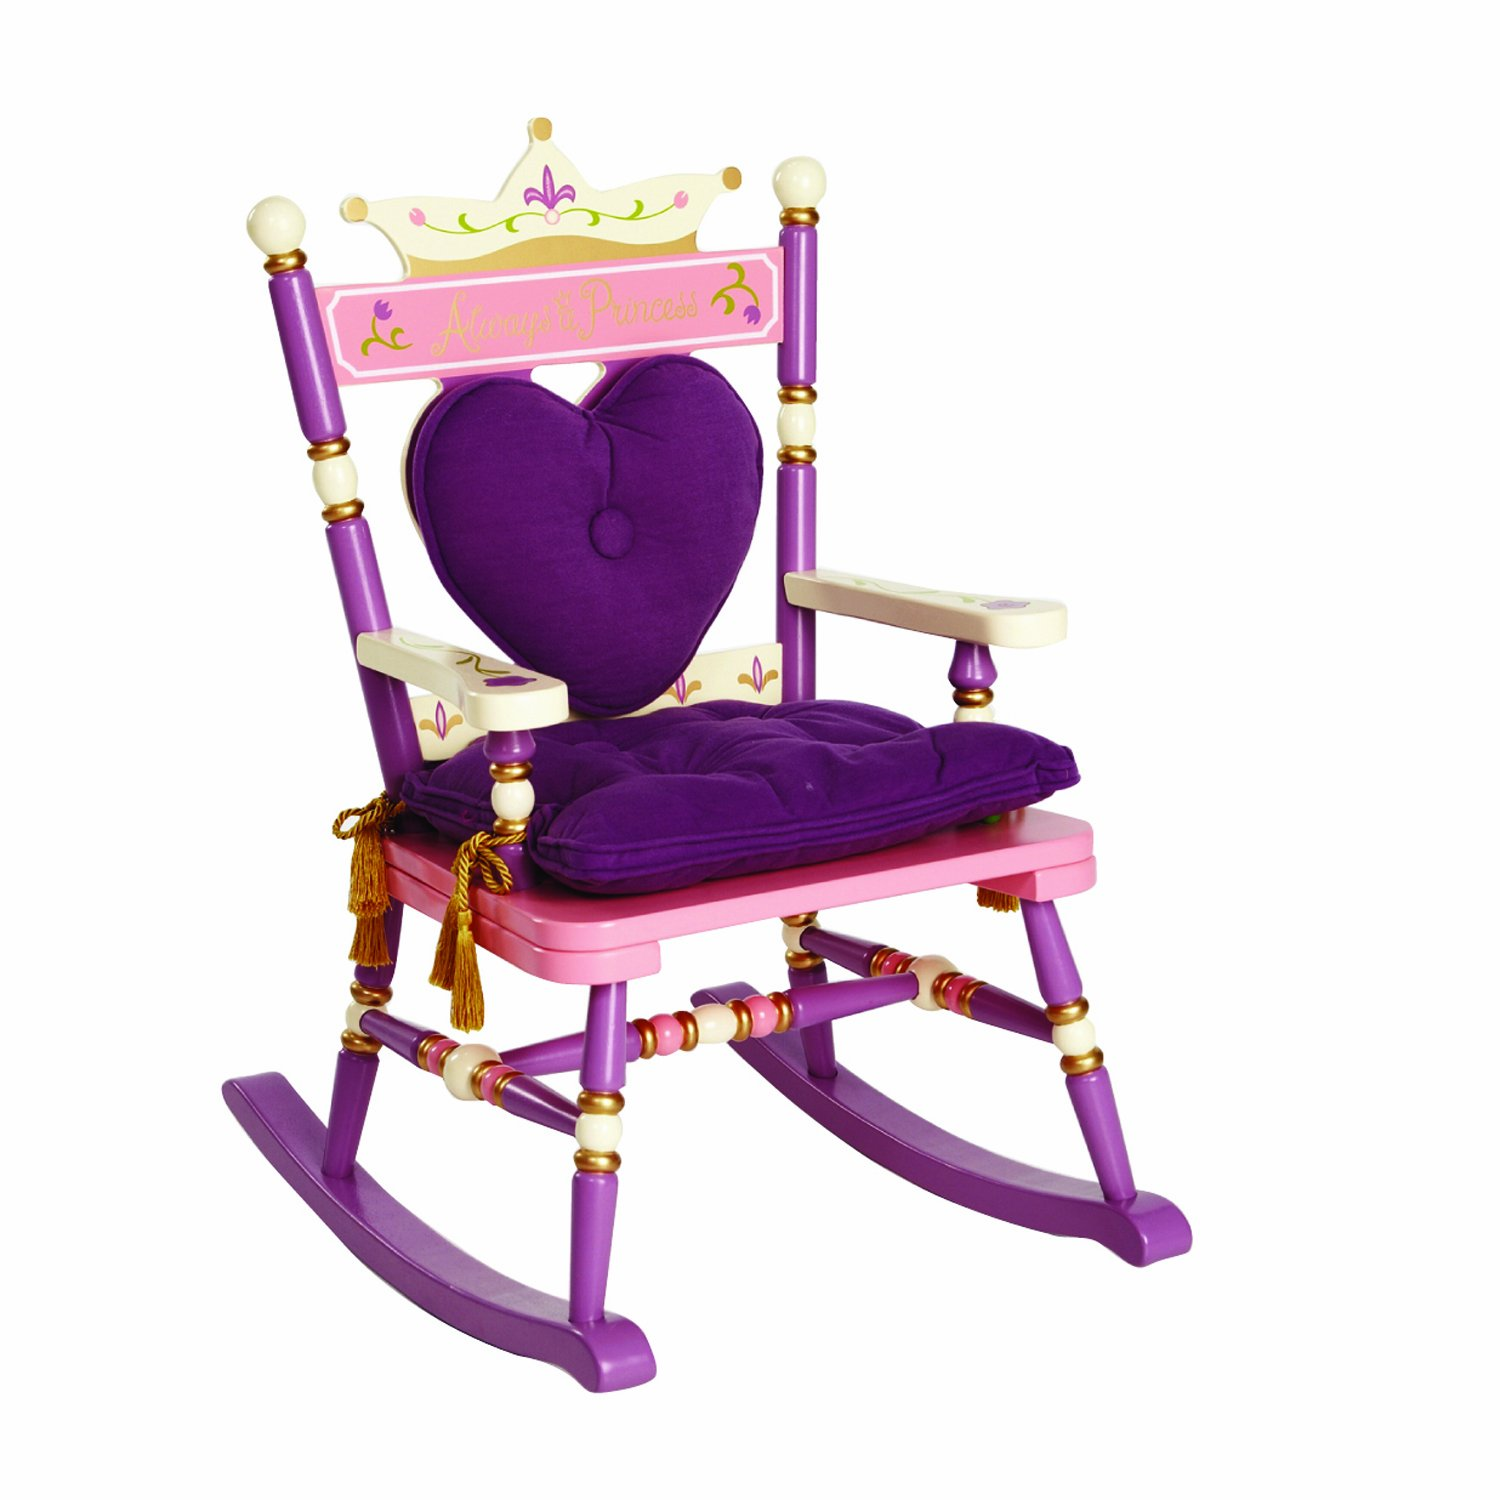 Wildkin Royal Rocking Chair, Princess by Wildkin